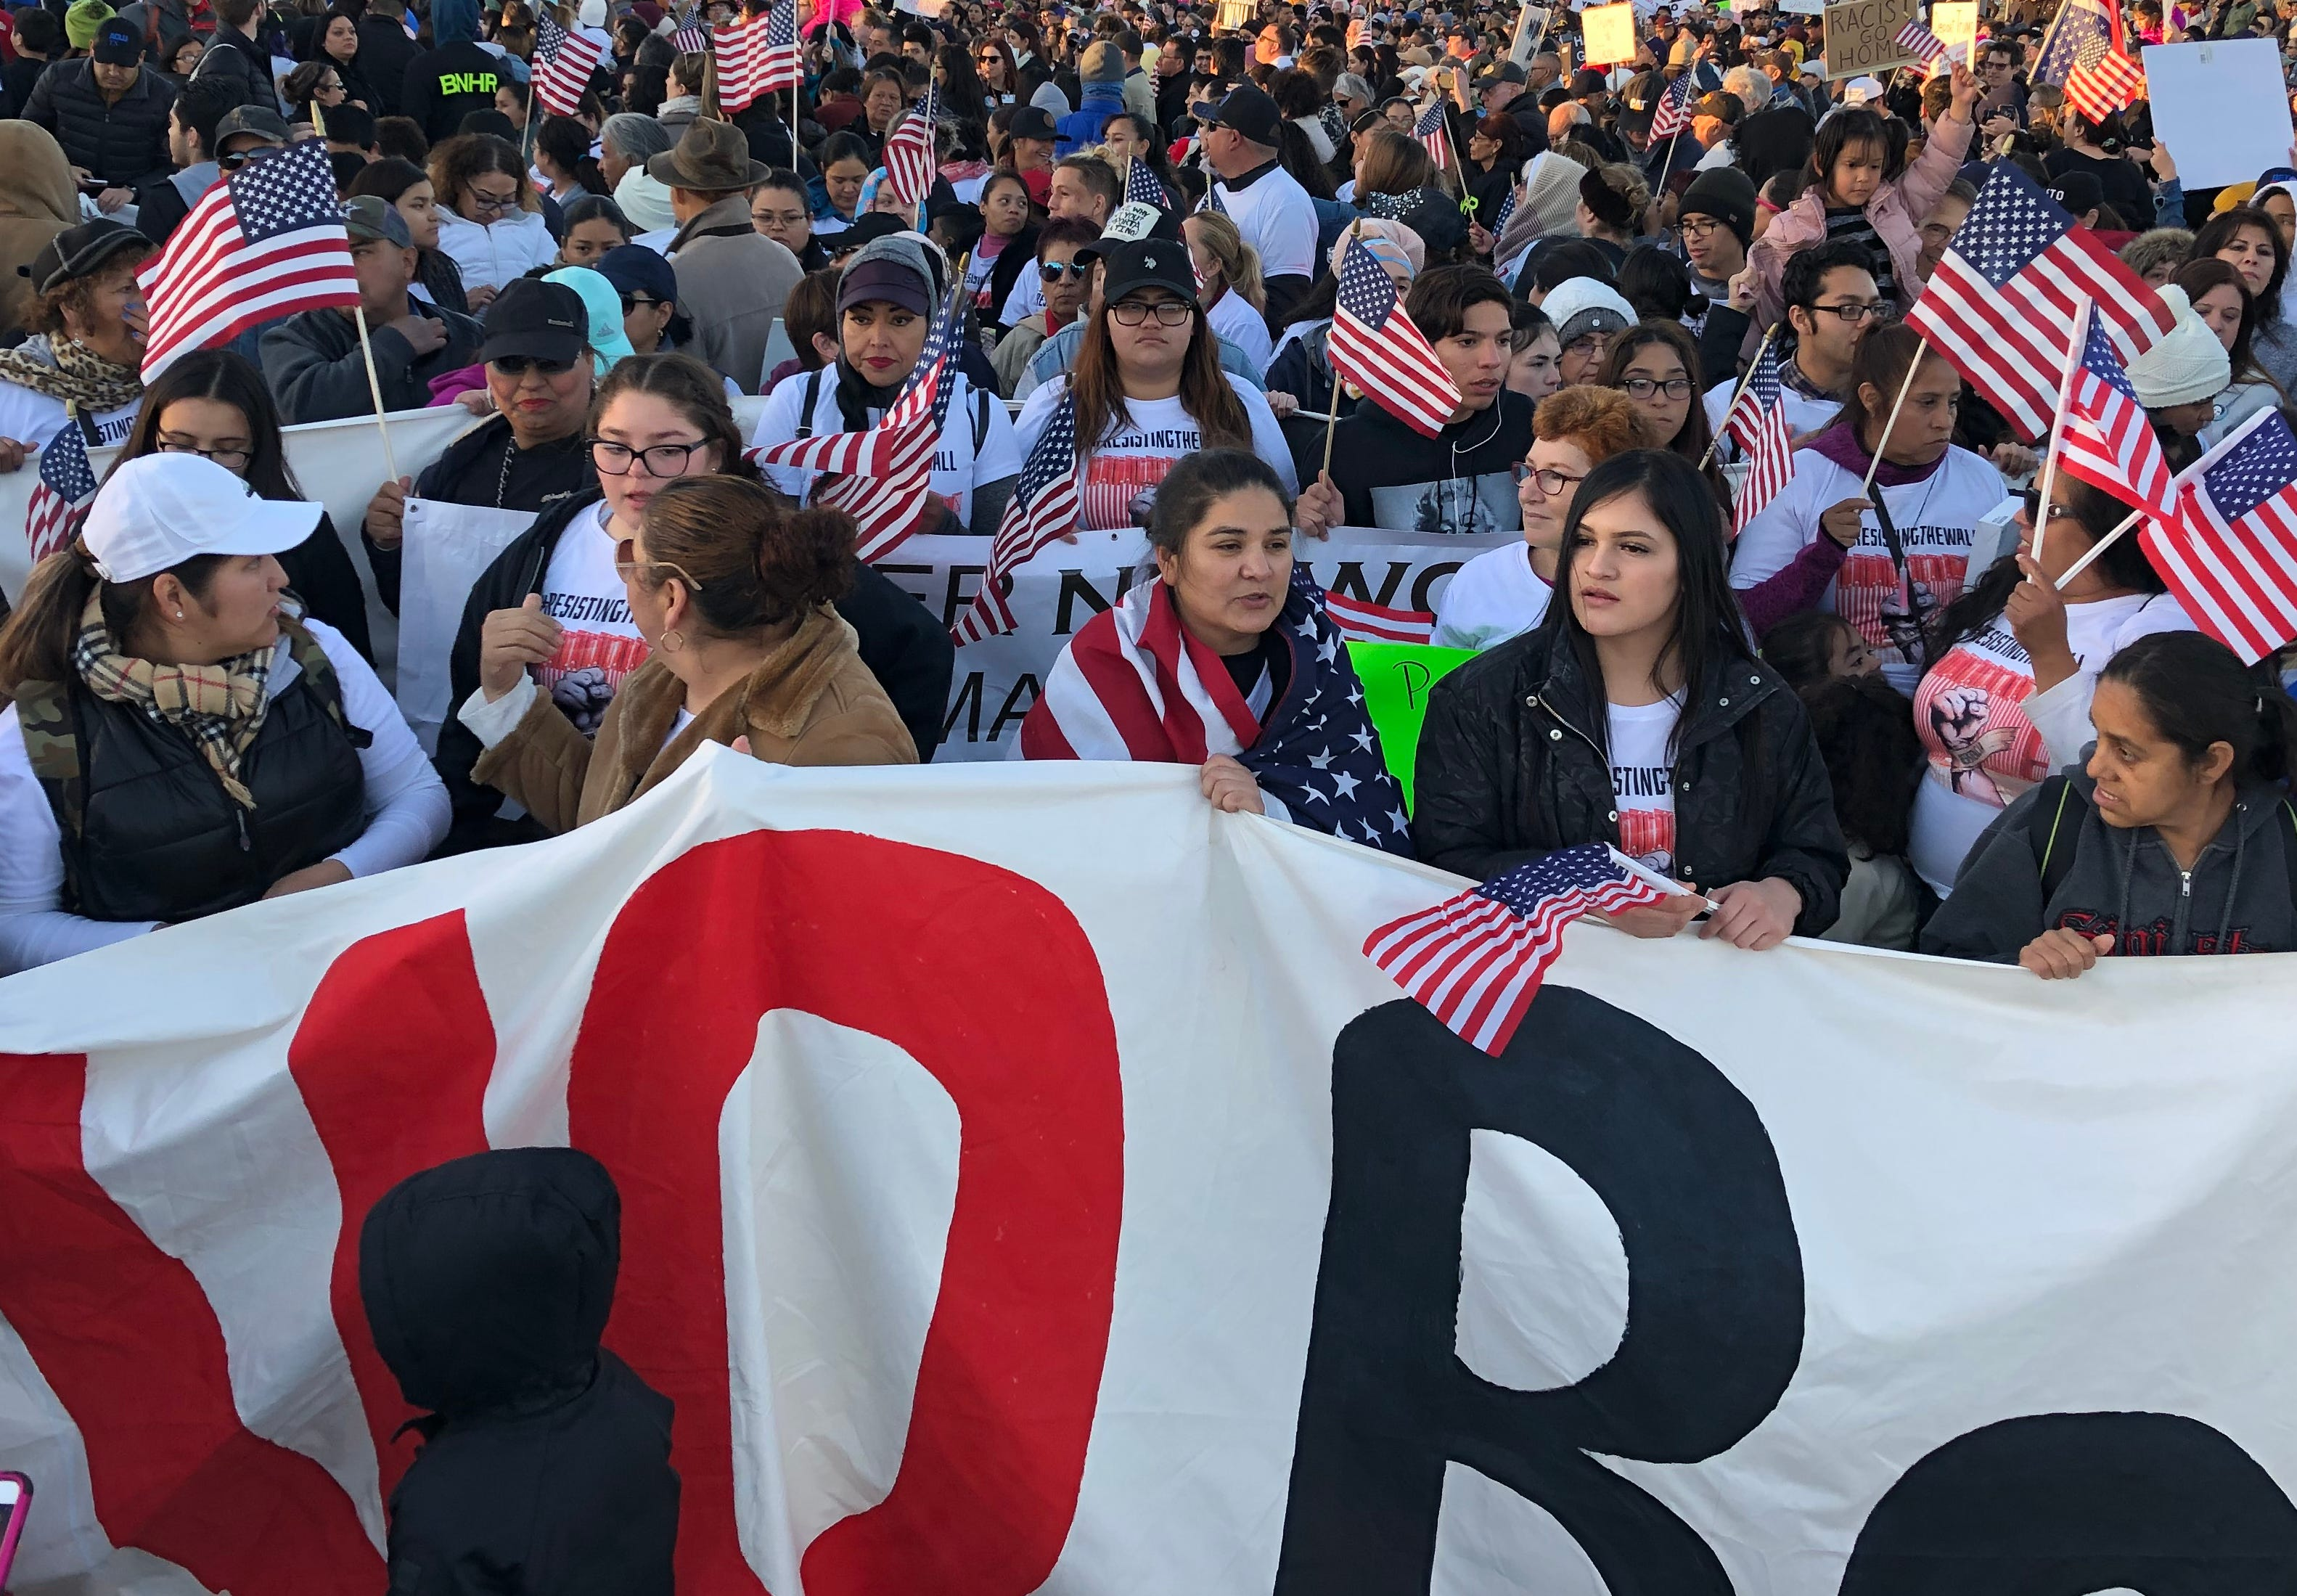 Several thousand protesters showed up at a counter rally about a mile away from President Donald Trump's rally in El Paso on Monday. Beto O'Rourke was the keynote speaker.